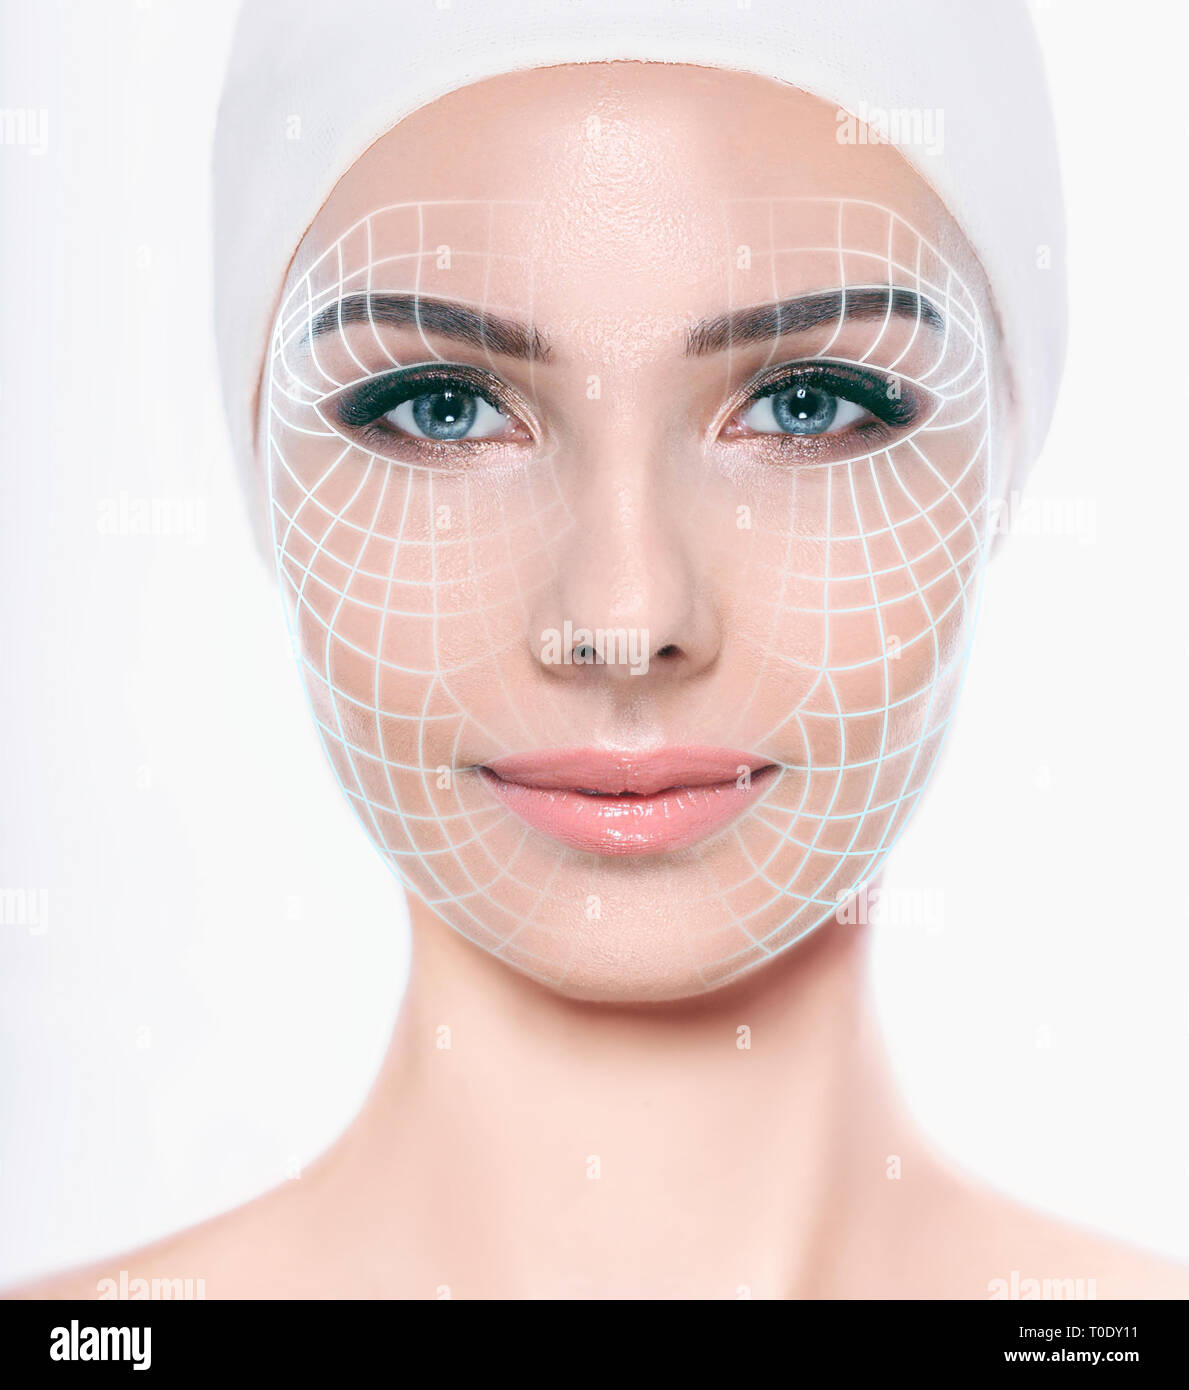 beautiful woman face with lifting arrows on skin . Concept of facial lifting, mesotherapy and anti aging cosmetology procedure - Stock Image